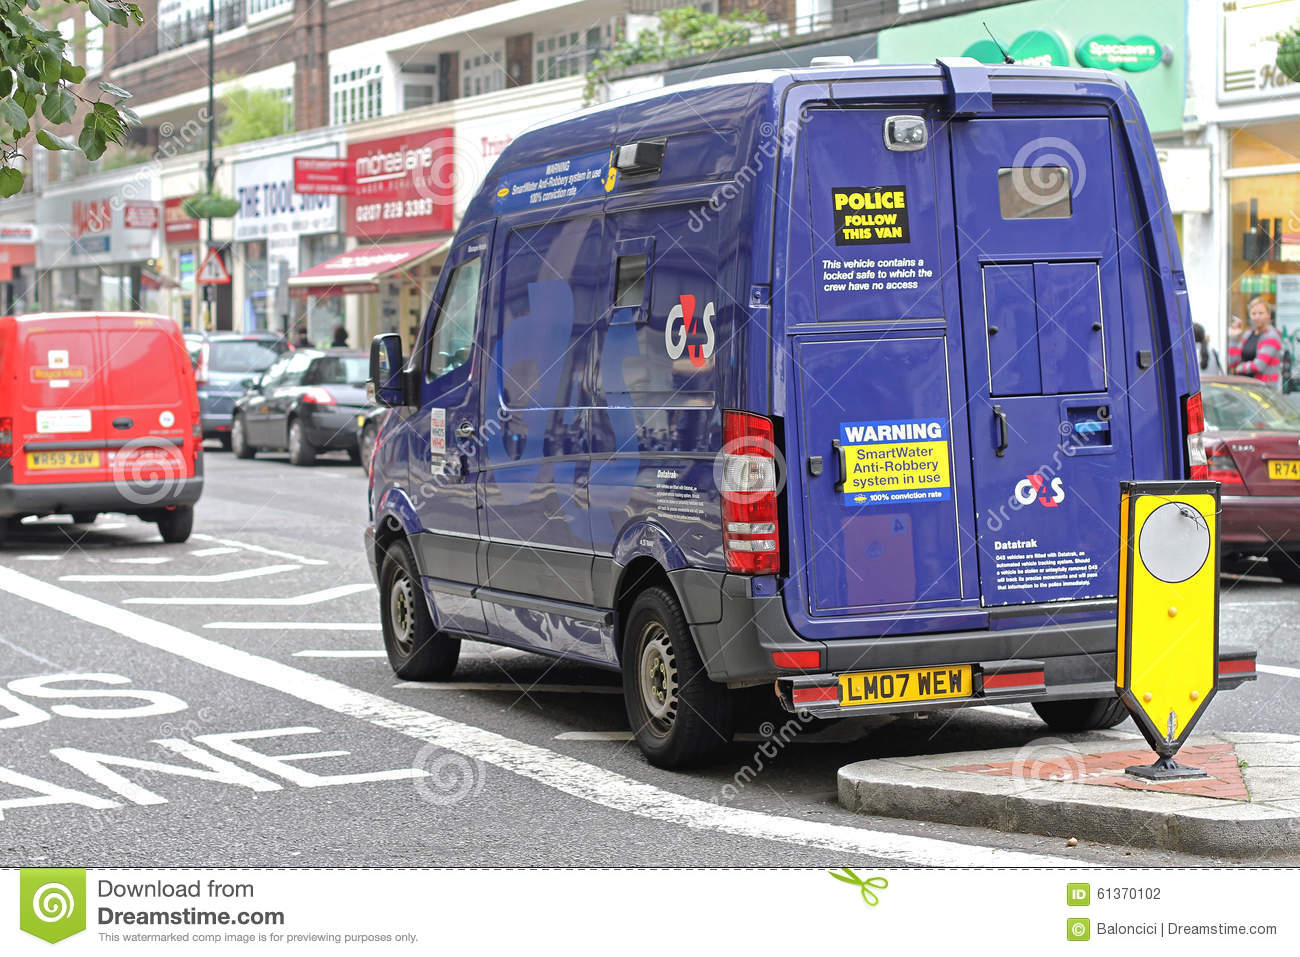 a58a0cda8e433f Security Van editorial photography. Image of london